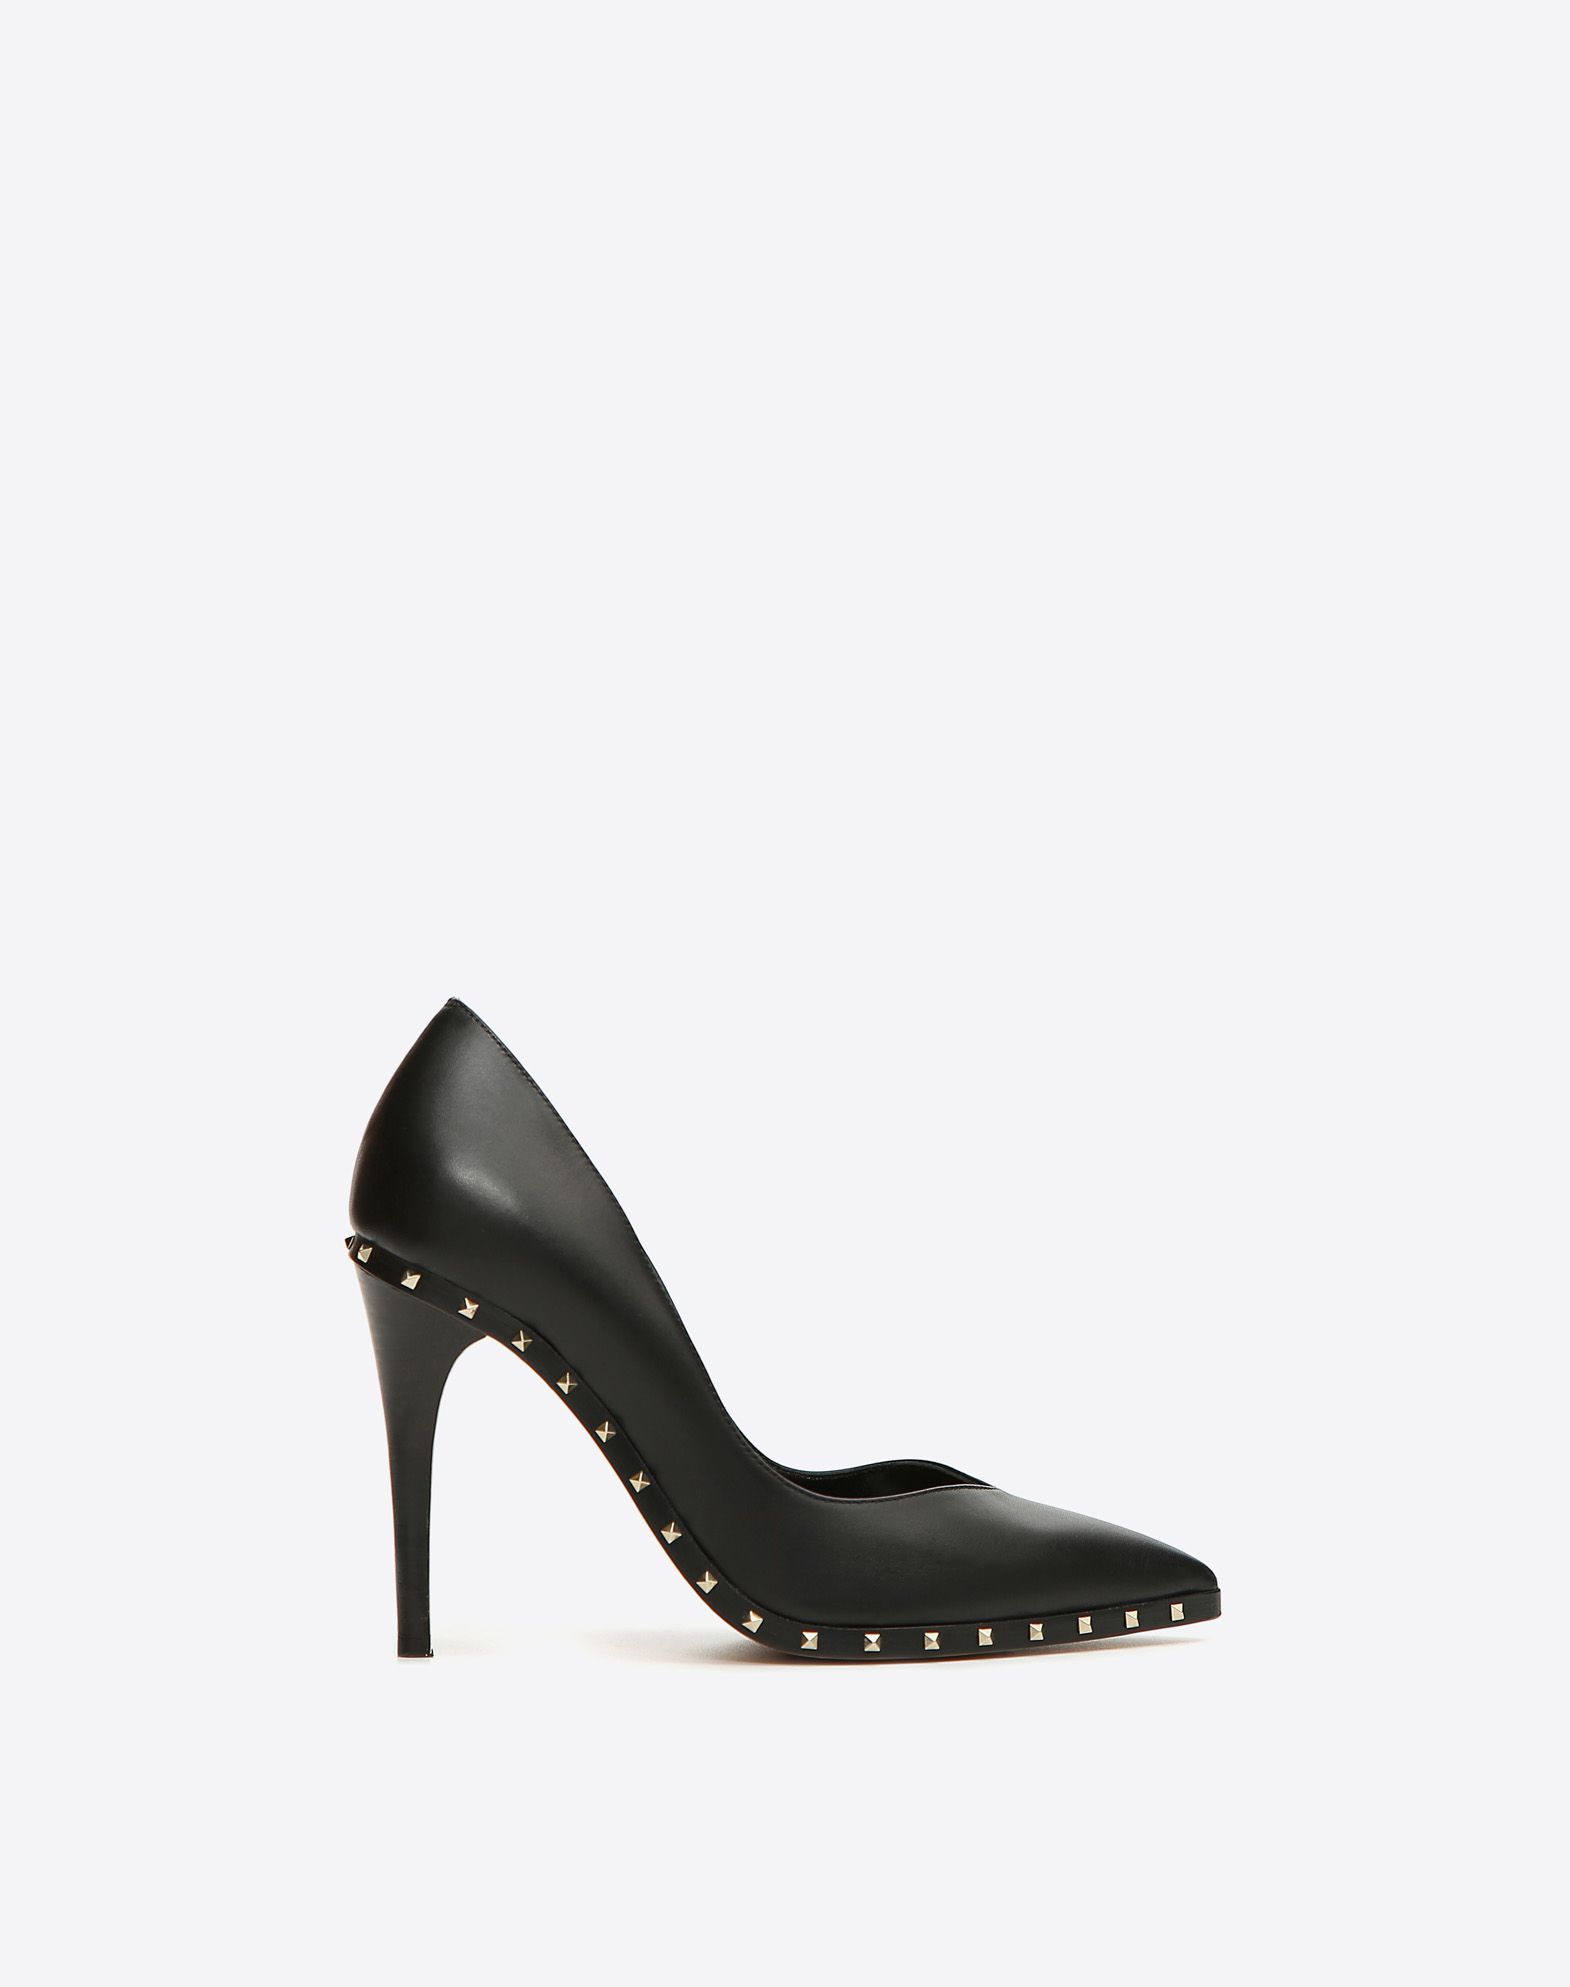 VALENTINO Solid color Leather sole Studs  11149454ln